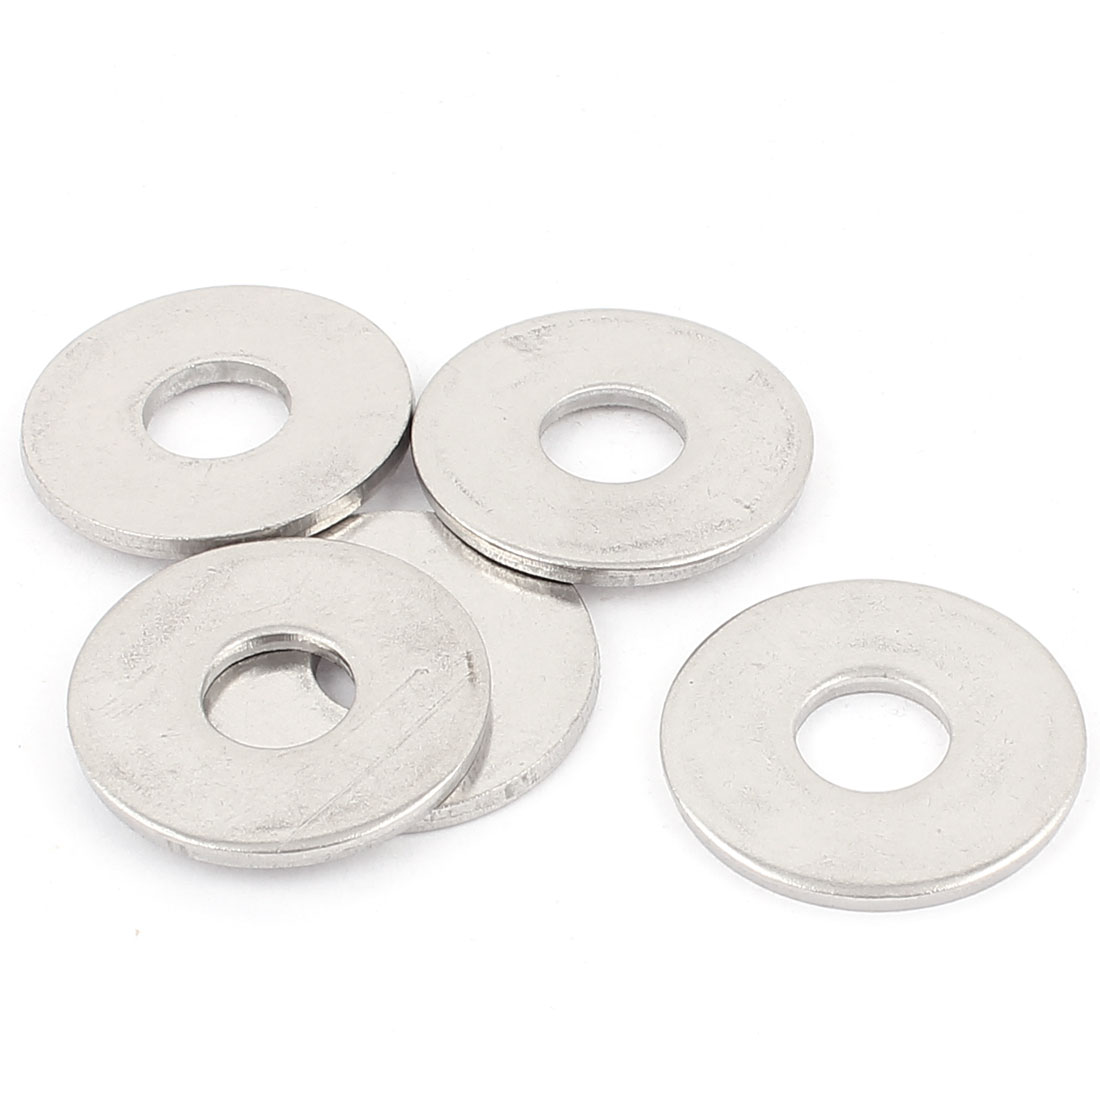 5pcs 12mm Inner Dia 304 Stainless Steel Flat Plain Washer Gaskets